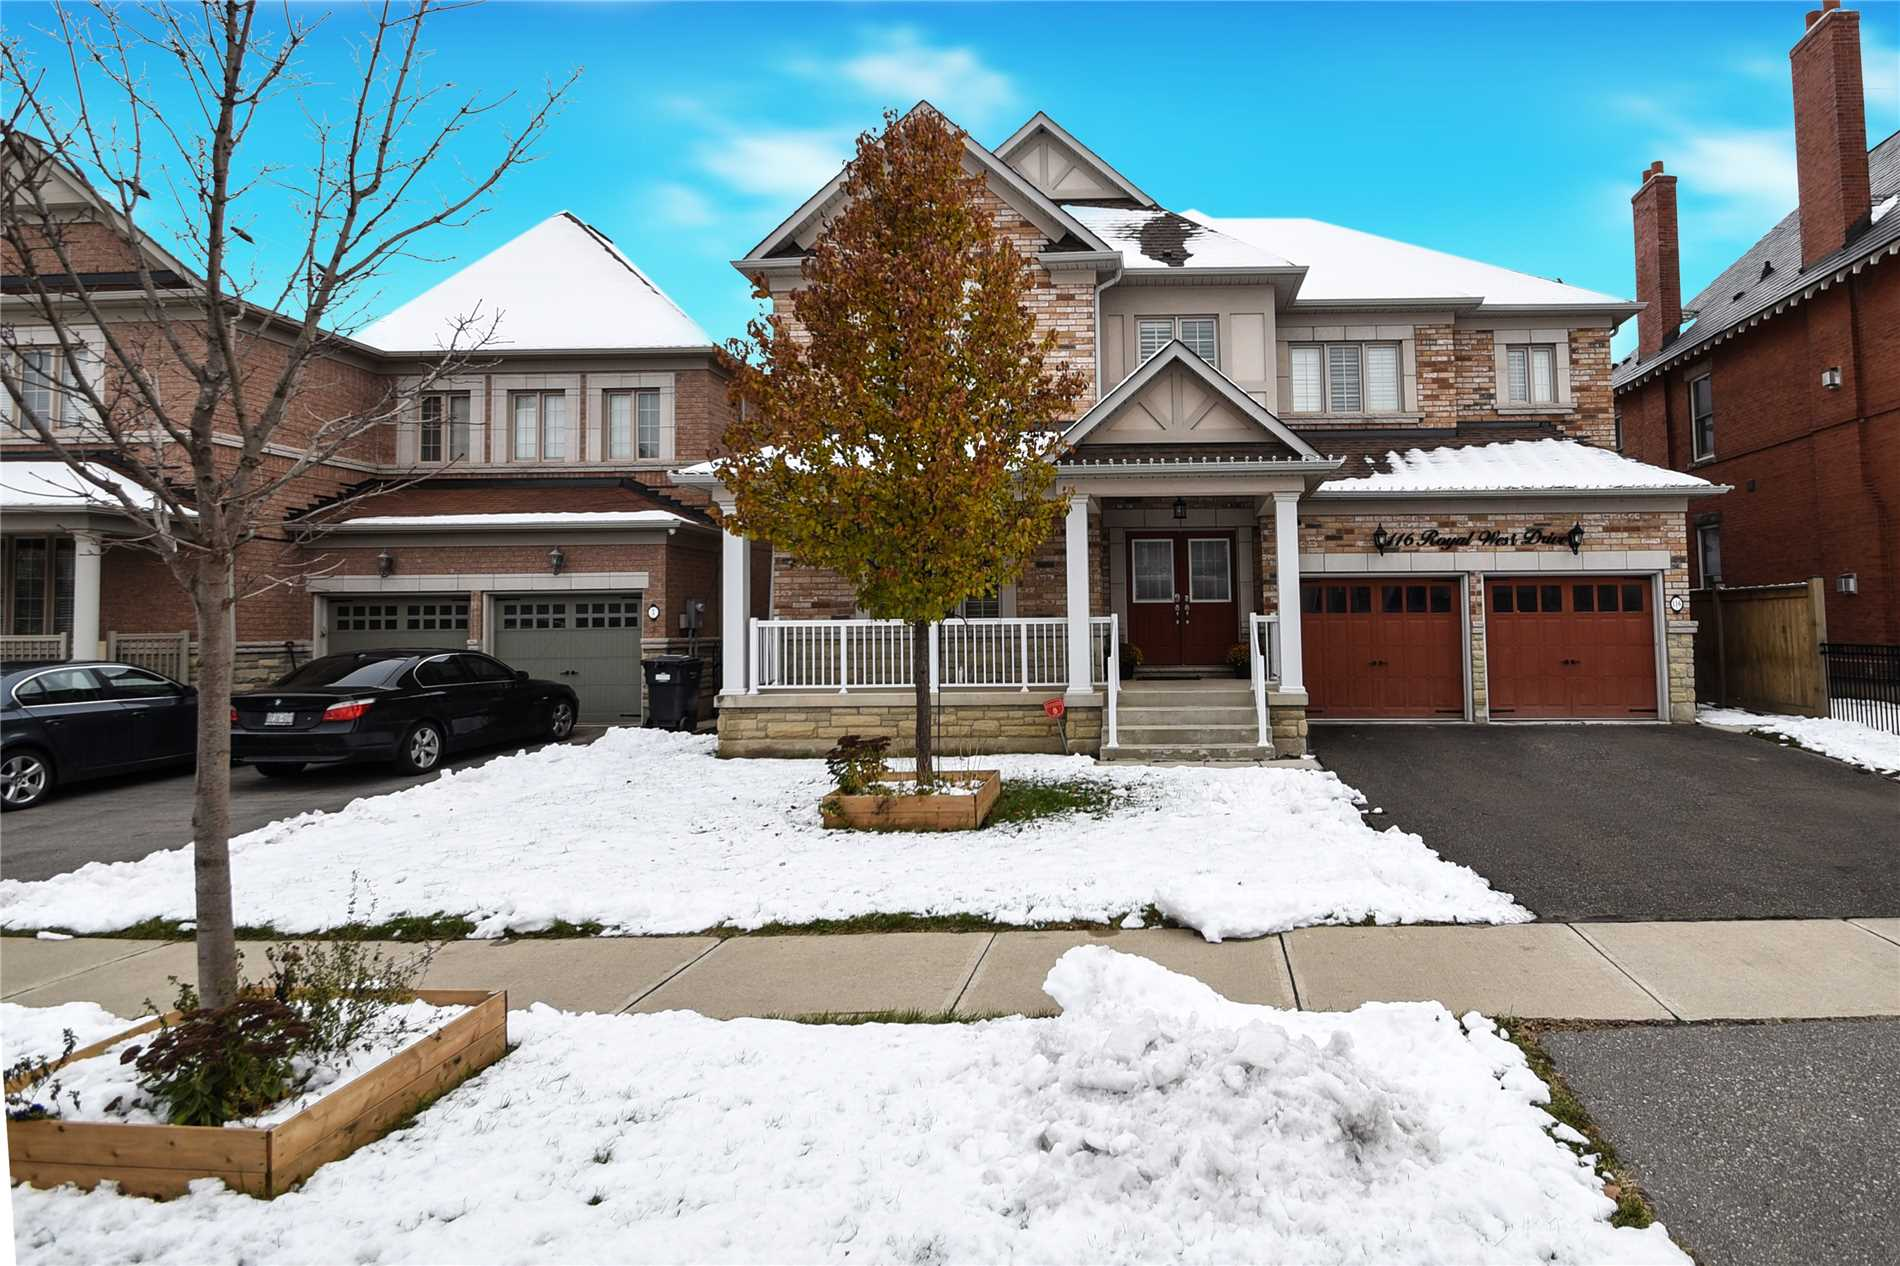 9525 Mississauga Road, Brampton | Sold? Ask us | Zolo ca